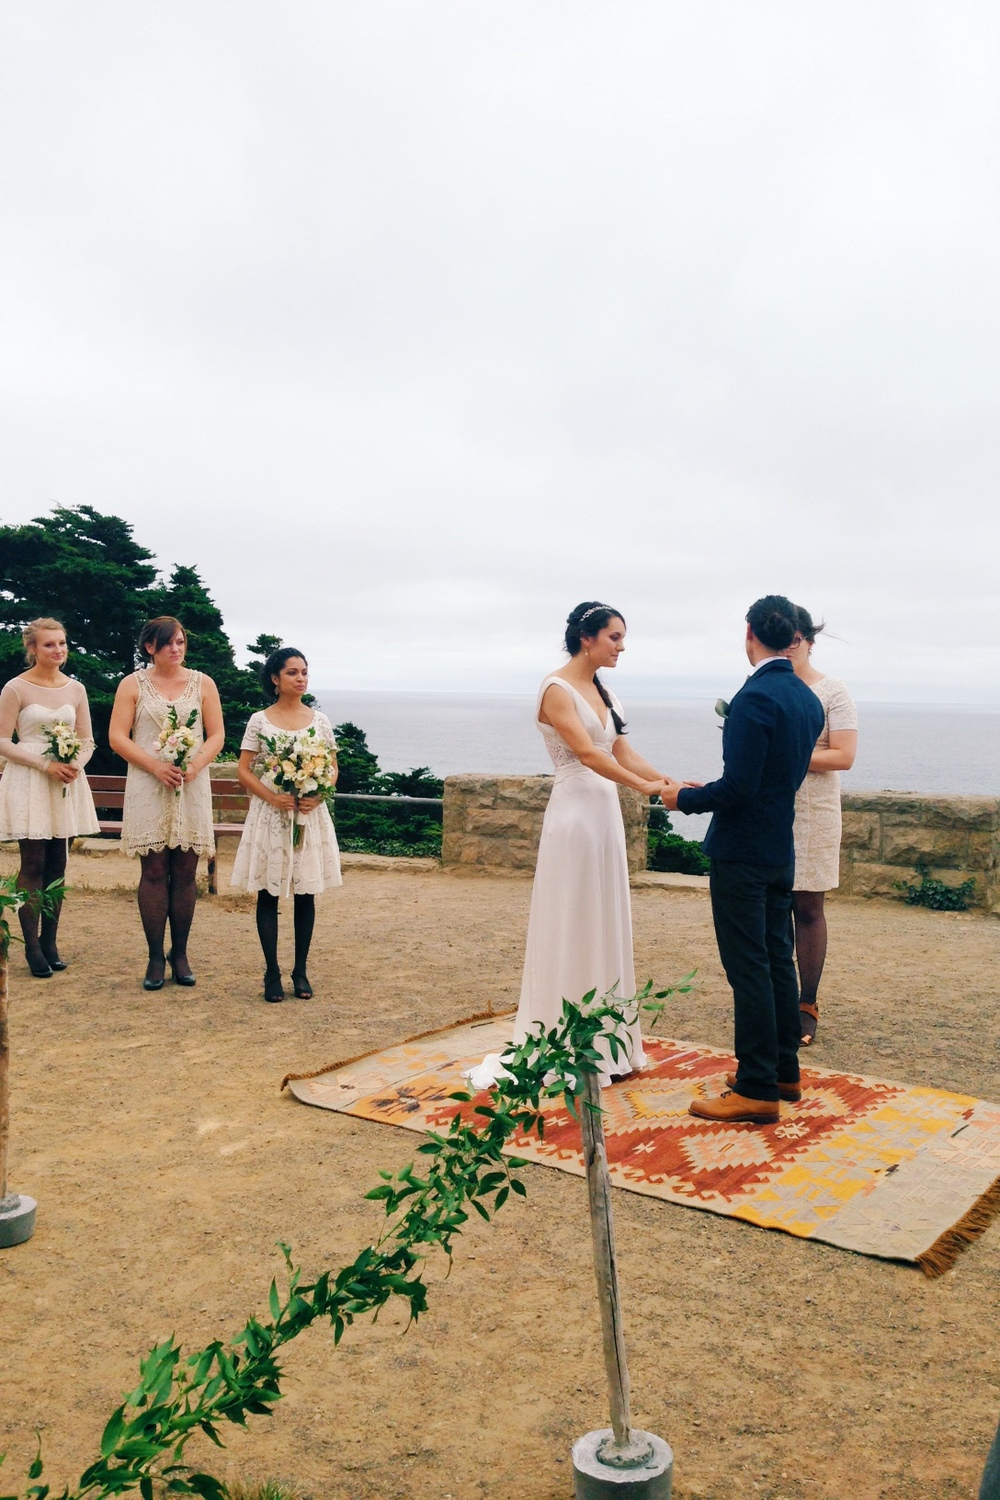 Wedding Day of Sarah and Daniel at Sutro Heights Park overlooking the Pacific.